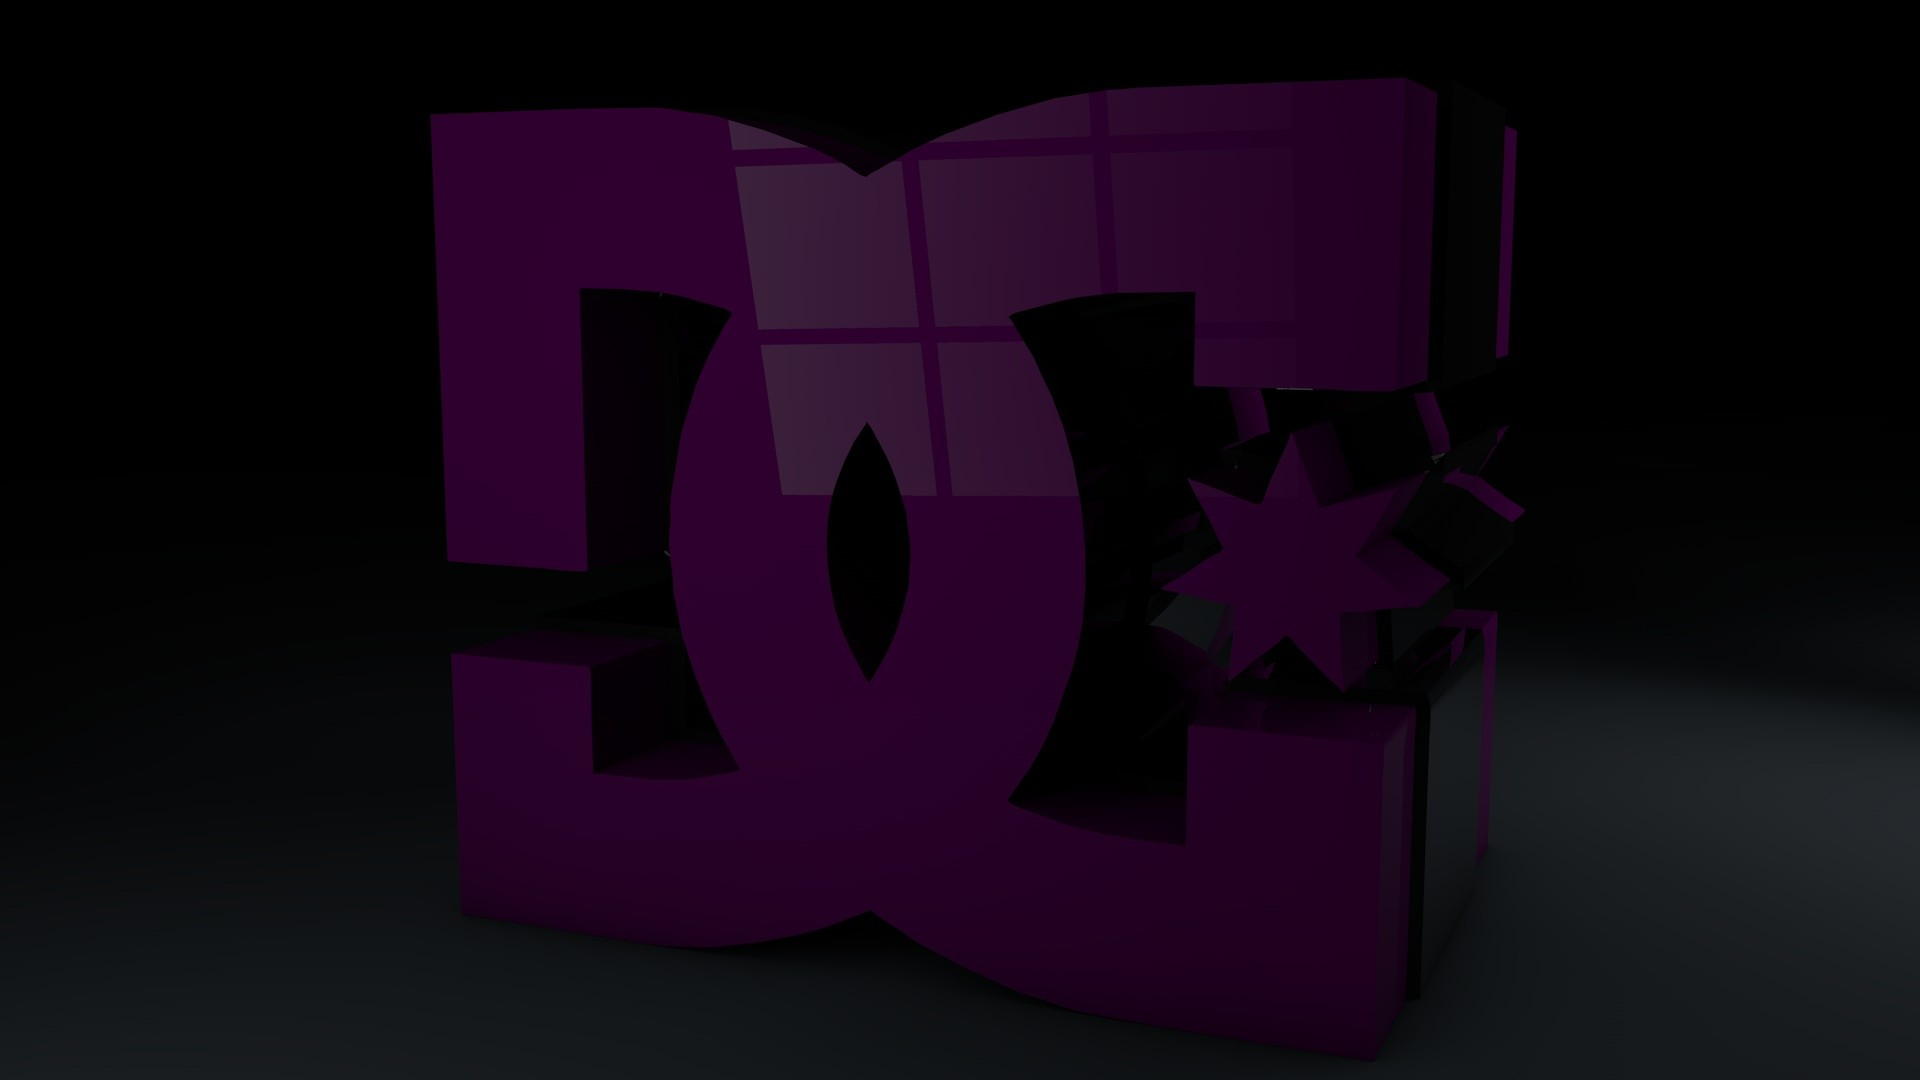 1920x1080 DC Shoes Logo Wallpaper Image With High Definition HD Wallpapers